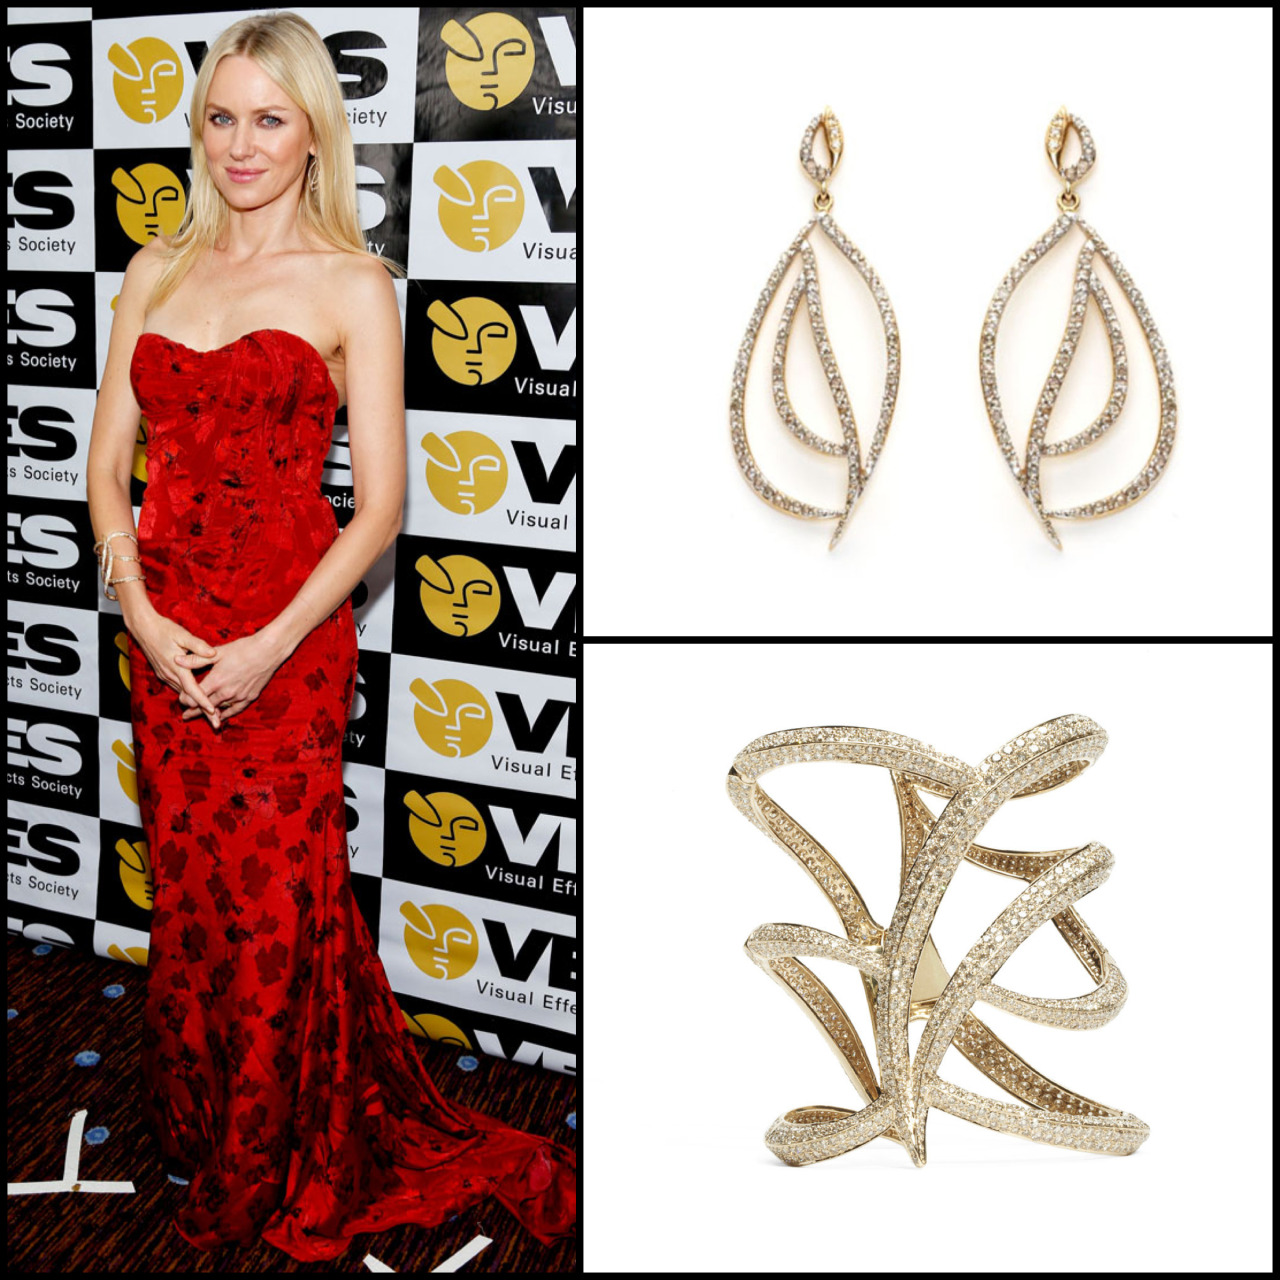 Naomi Watts walks the red carpet in our Diamond Owl Cuff http://bit.ly/UZMma1 and Earrings http://bit.ly/WeBLff